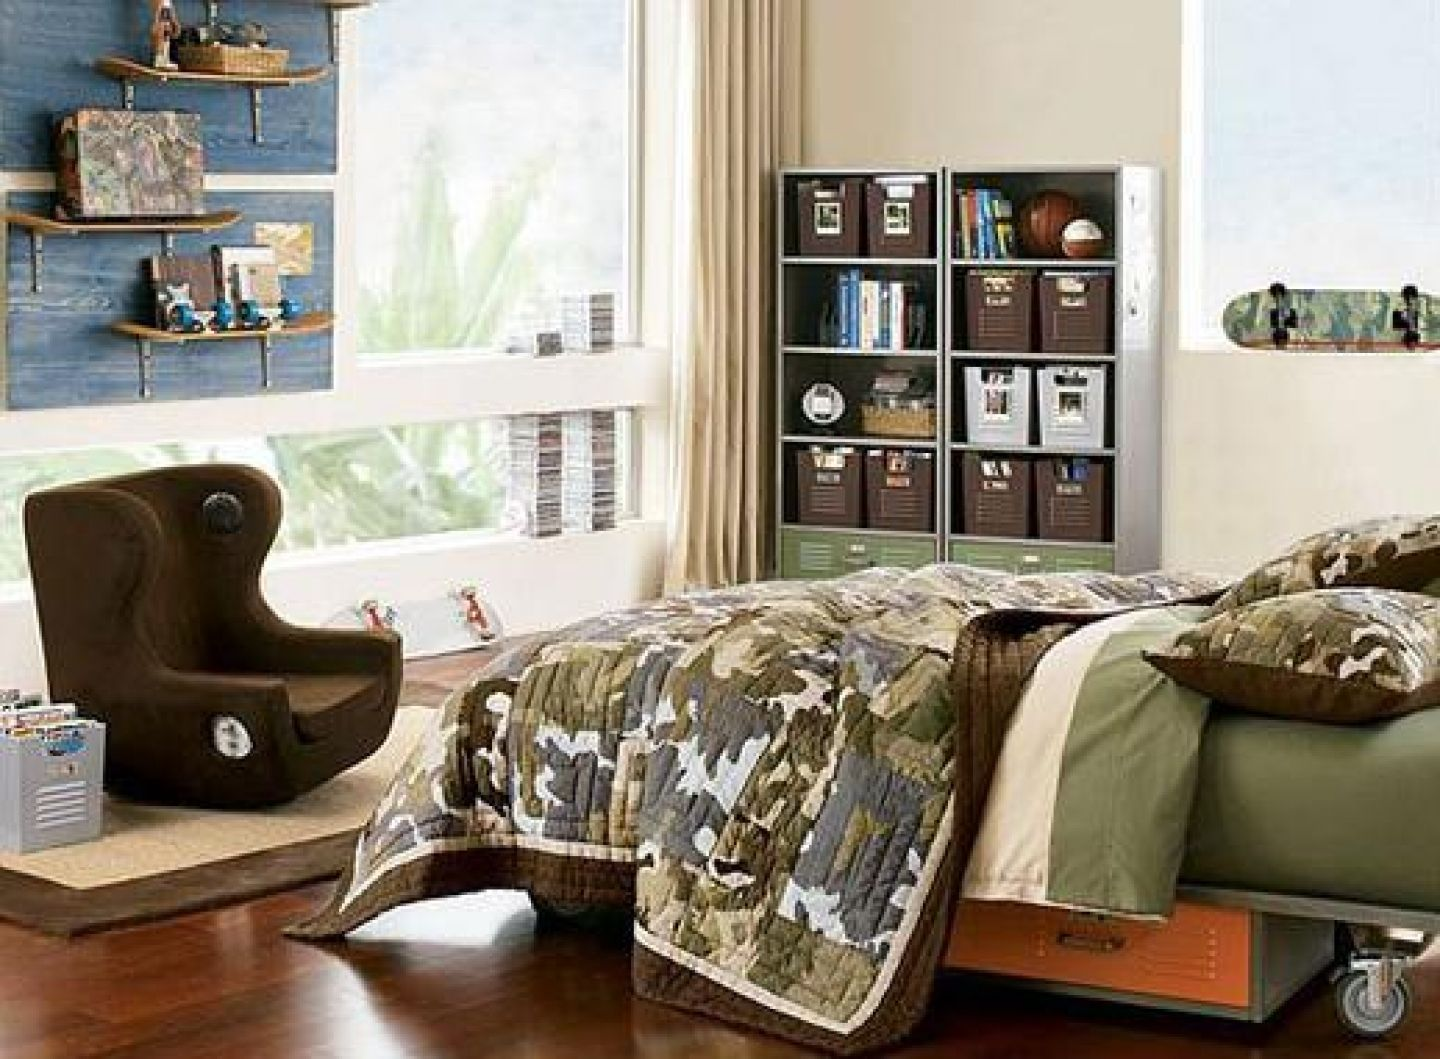 teenageboys+bedroom+ideas | Bedroom ideas for teenage boys kids ...